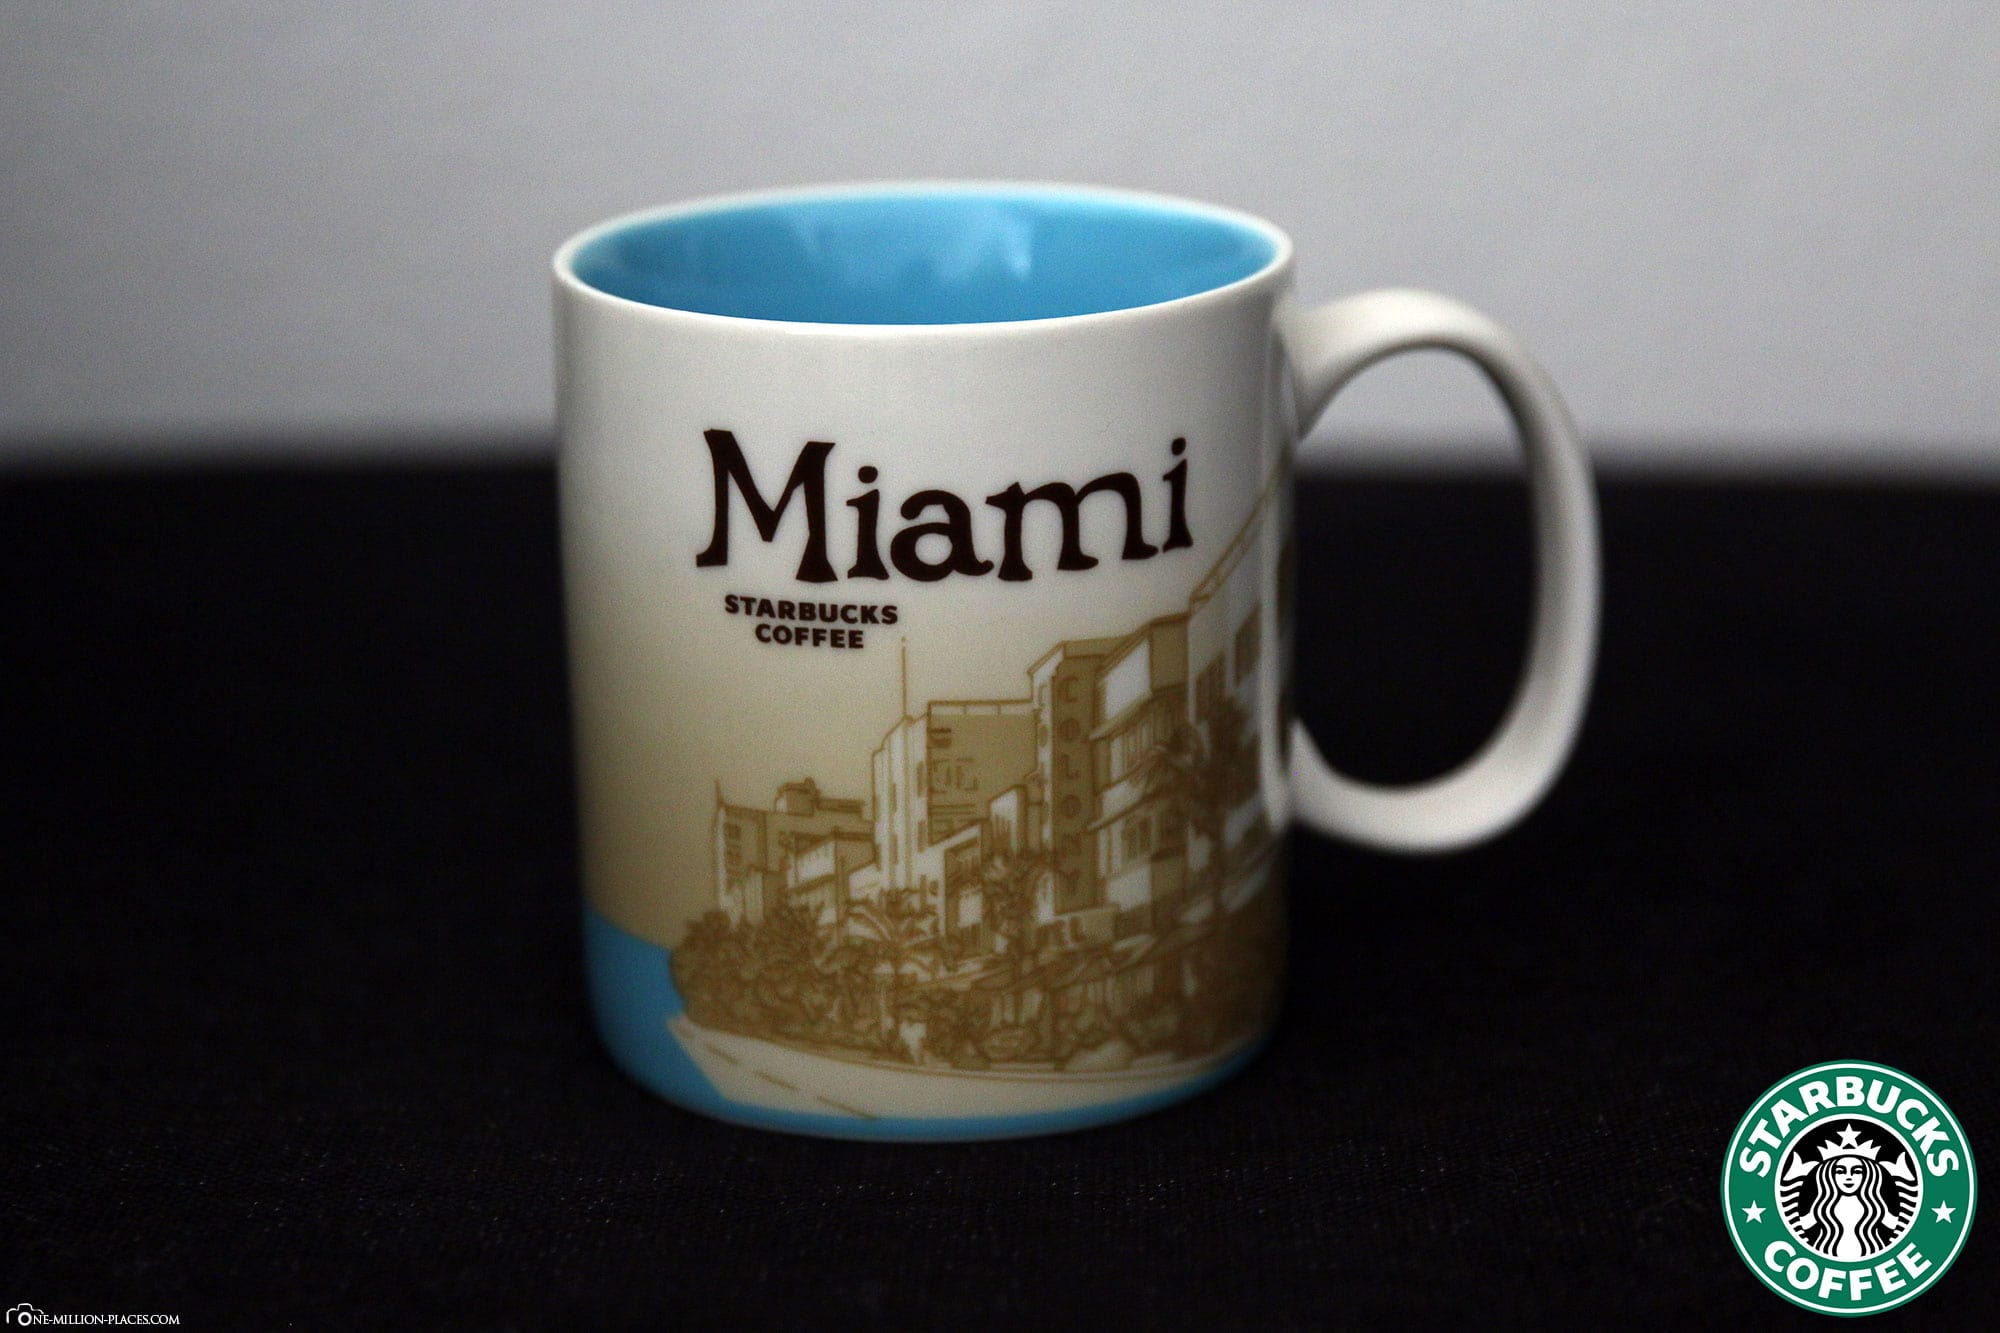 Miami, Starbucks Tasse, Global Icon Serie, City Mugs, Sammlung, USA, Reisebericht